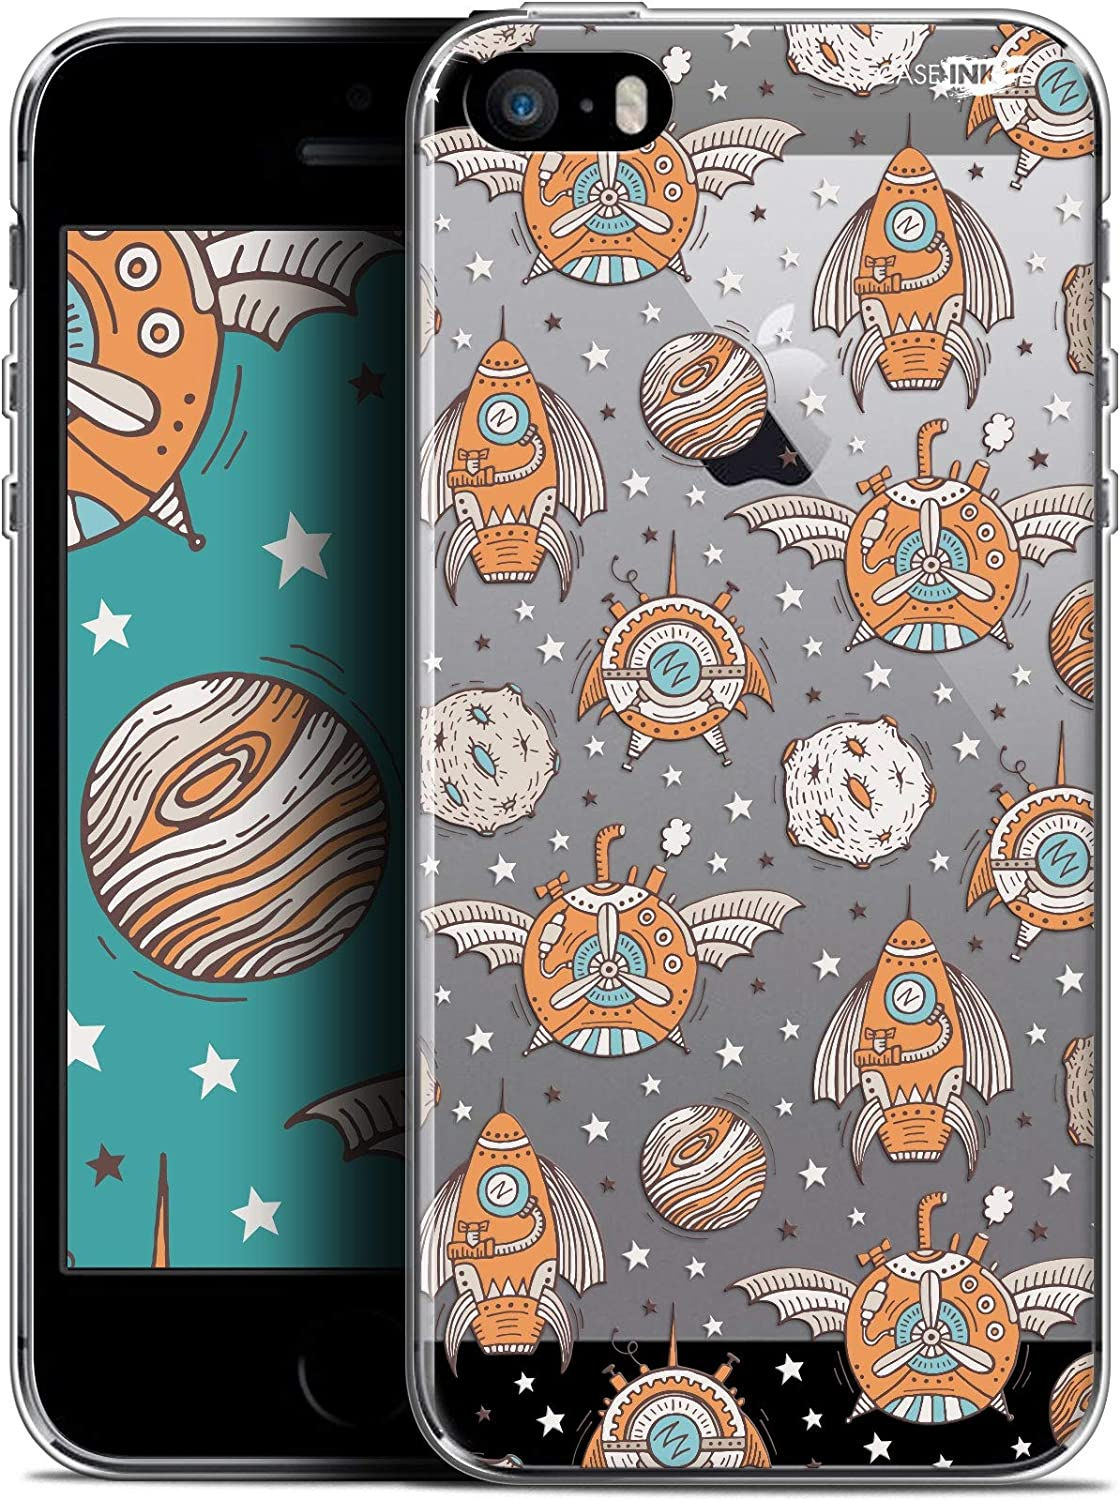 Punk Space Ultra Thin Case for Apple iPhone 5/5S/SE 4 Inch